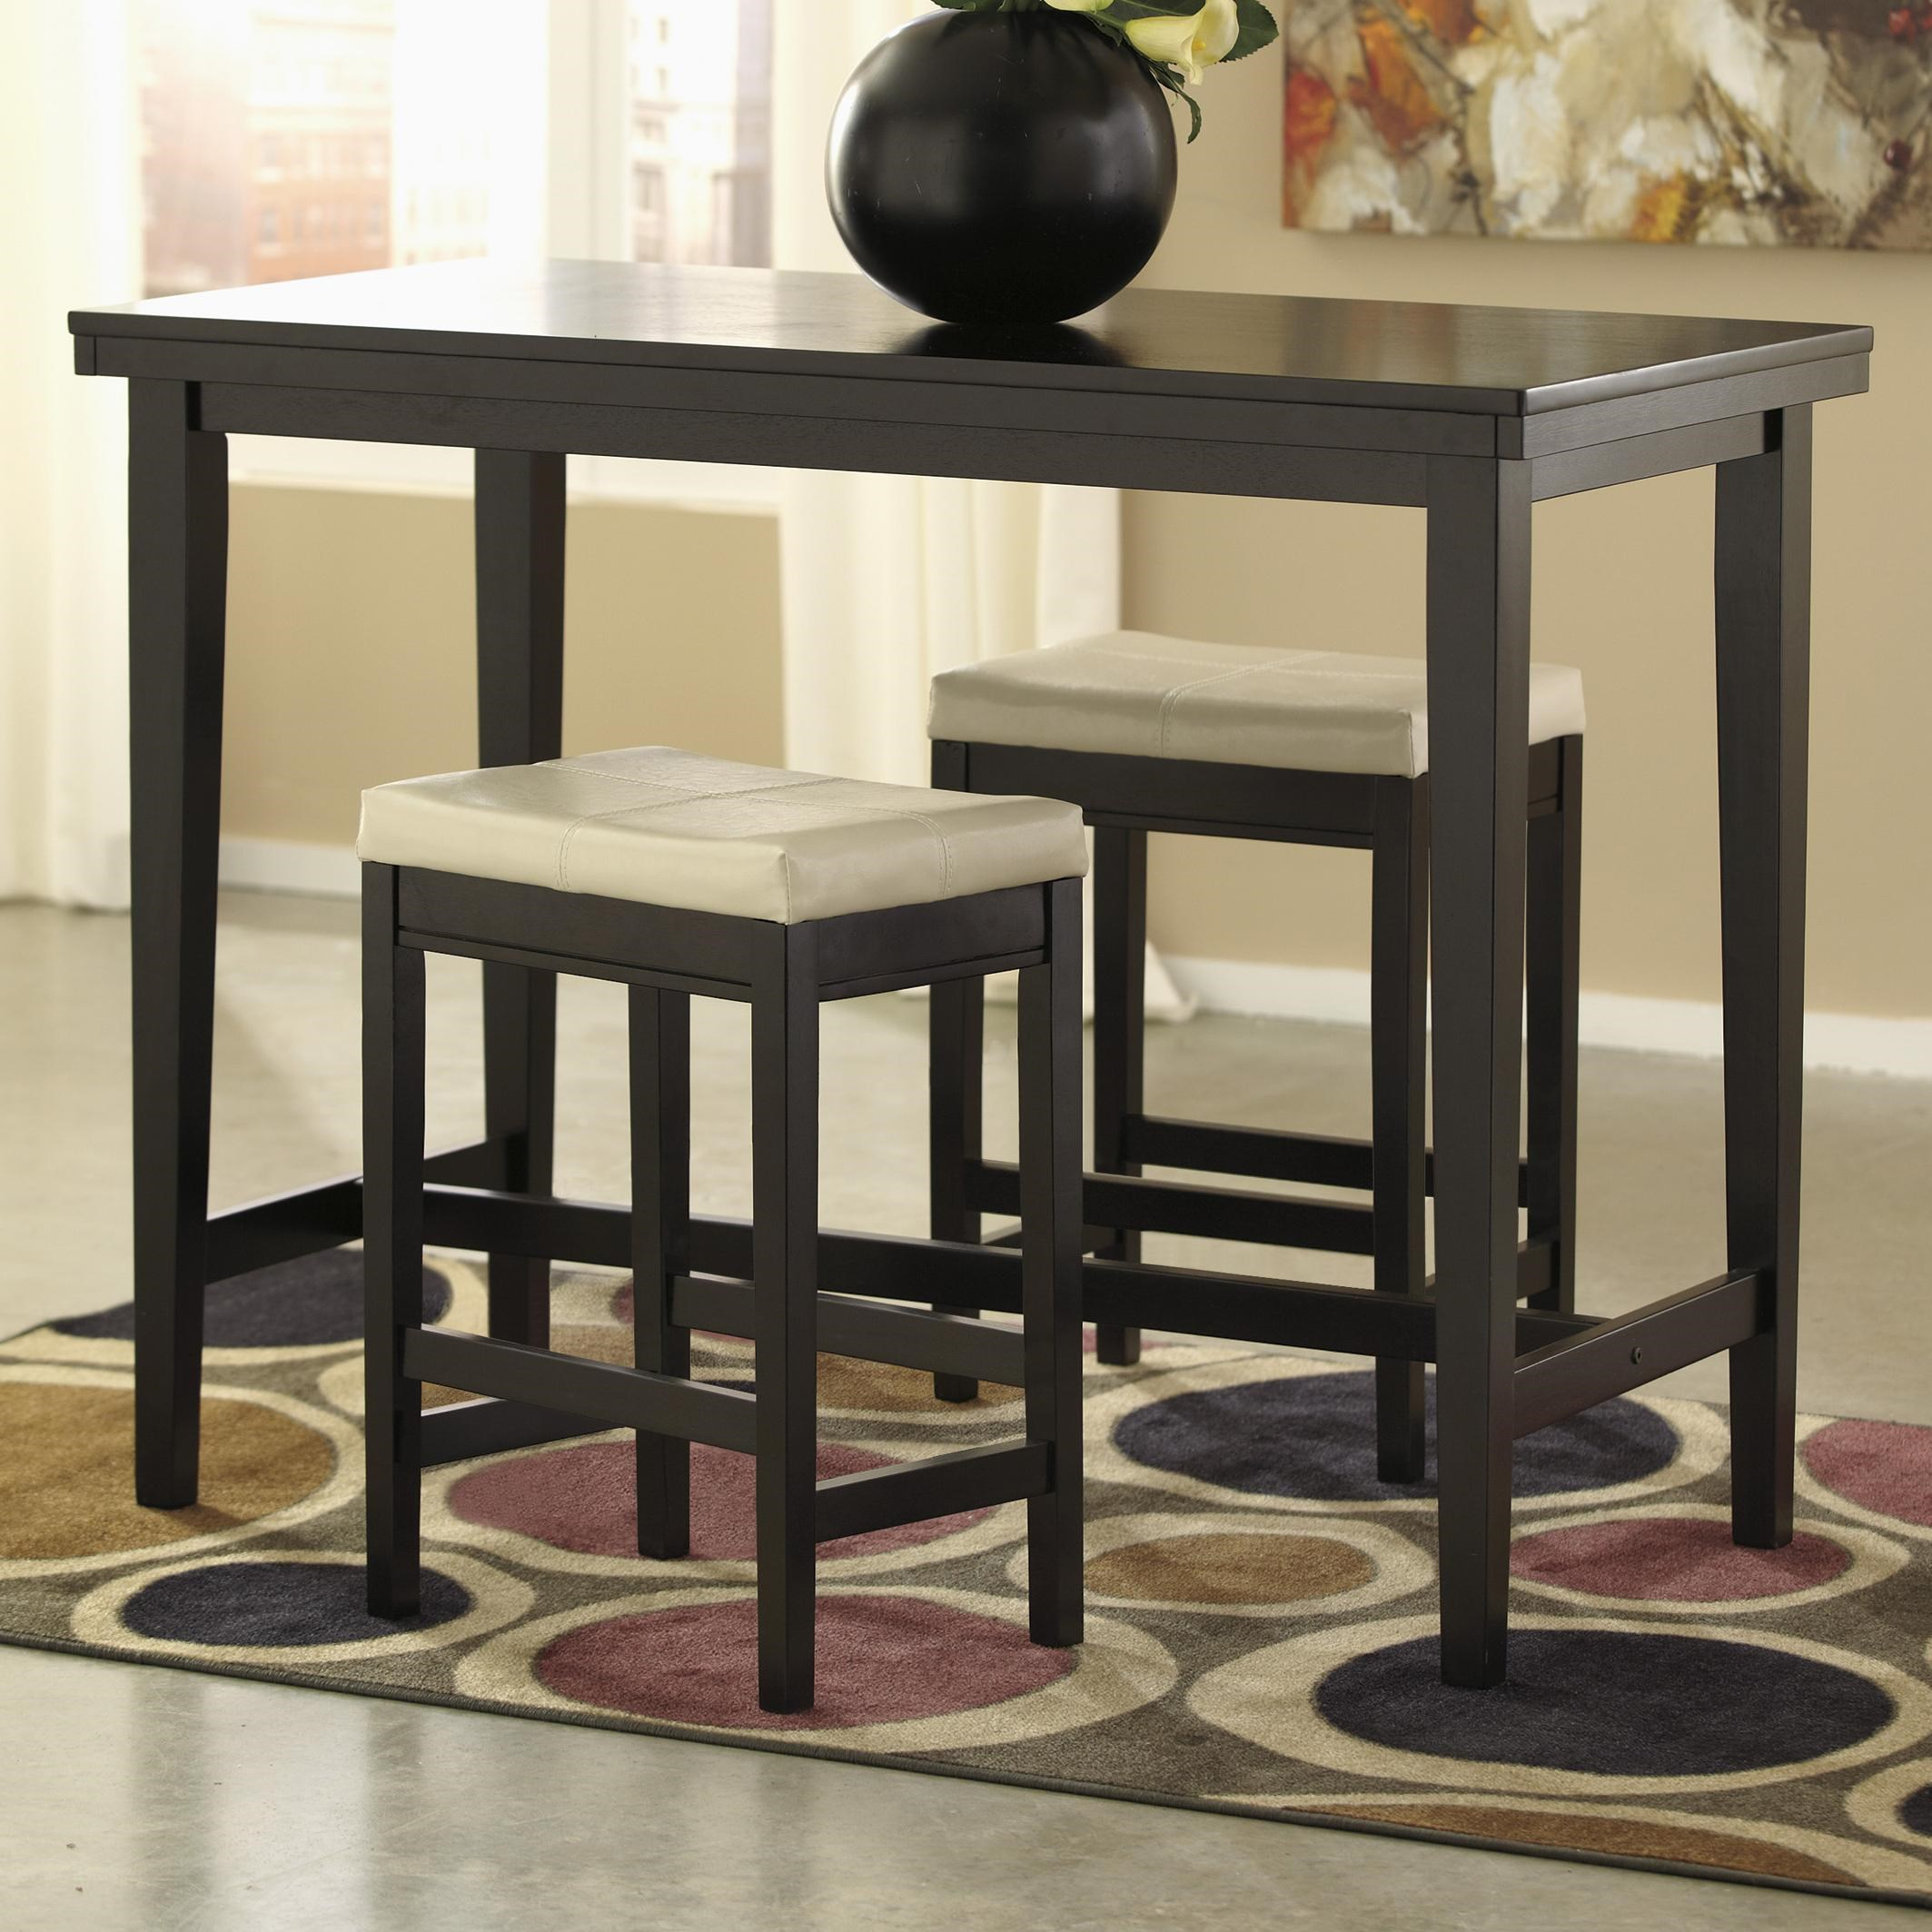 Signature Design by Ashley Kimonte 3 Piece Counter Table  : kimonte20 201195589344d250 132x124 b0jpgscalebothampwidth500ampheight500ampfsharpen25ampdown from www.beckerfurnitureworld.com size 500 x 500 jpeg 55kB